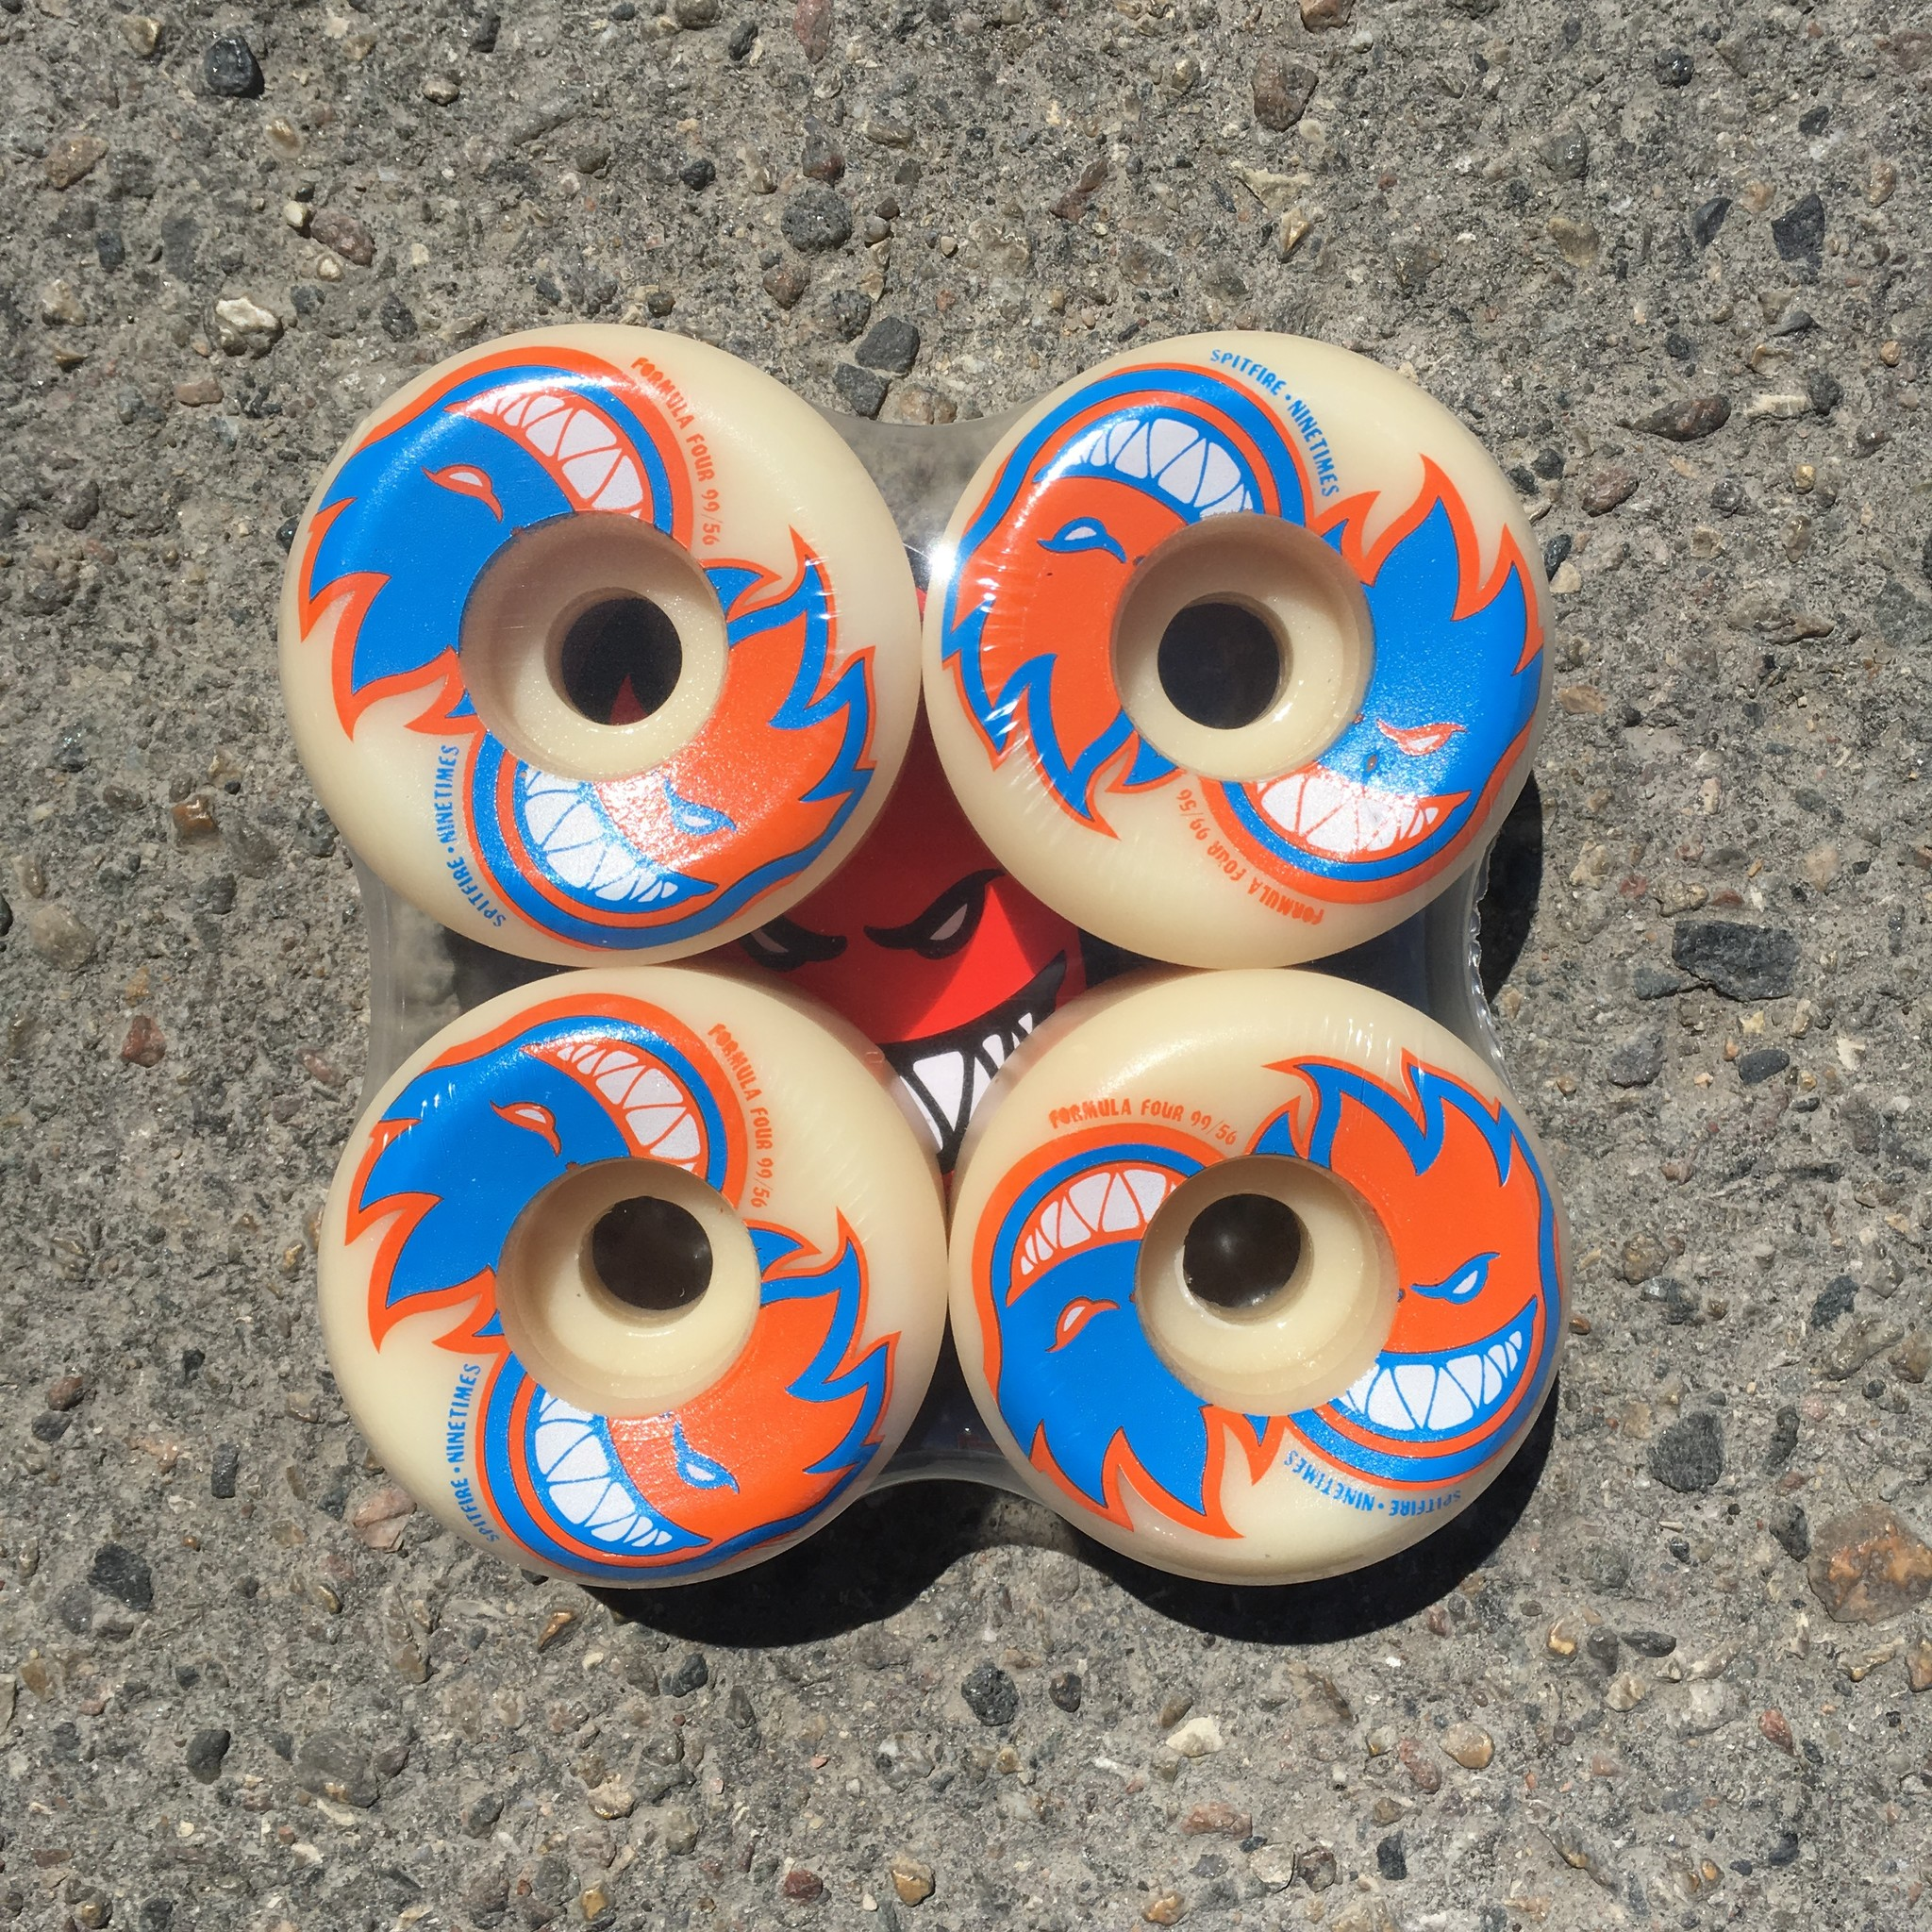 Ninetimes Spitfire X Ninetimes Yin Yang Wheel - Formula Four Conical Full 56mm 99a